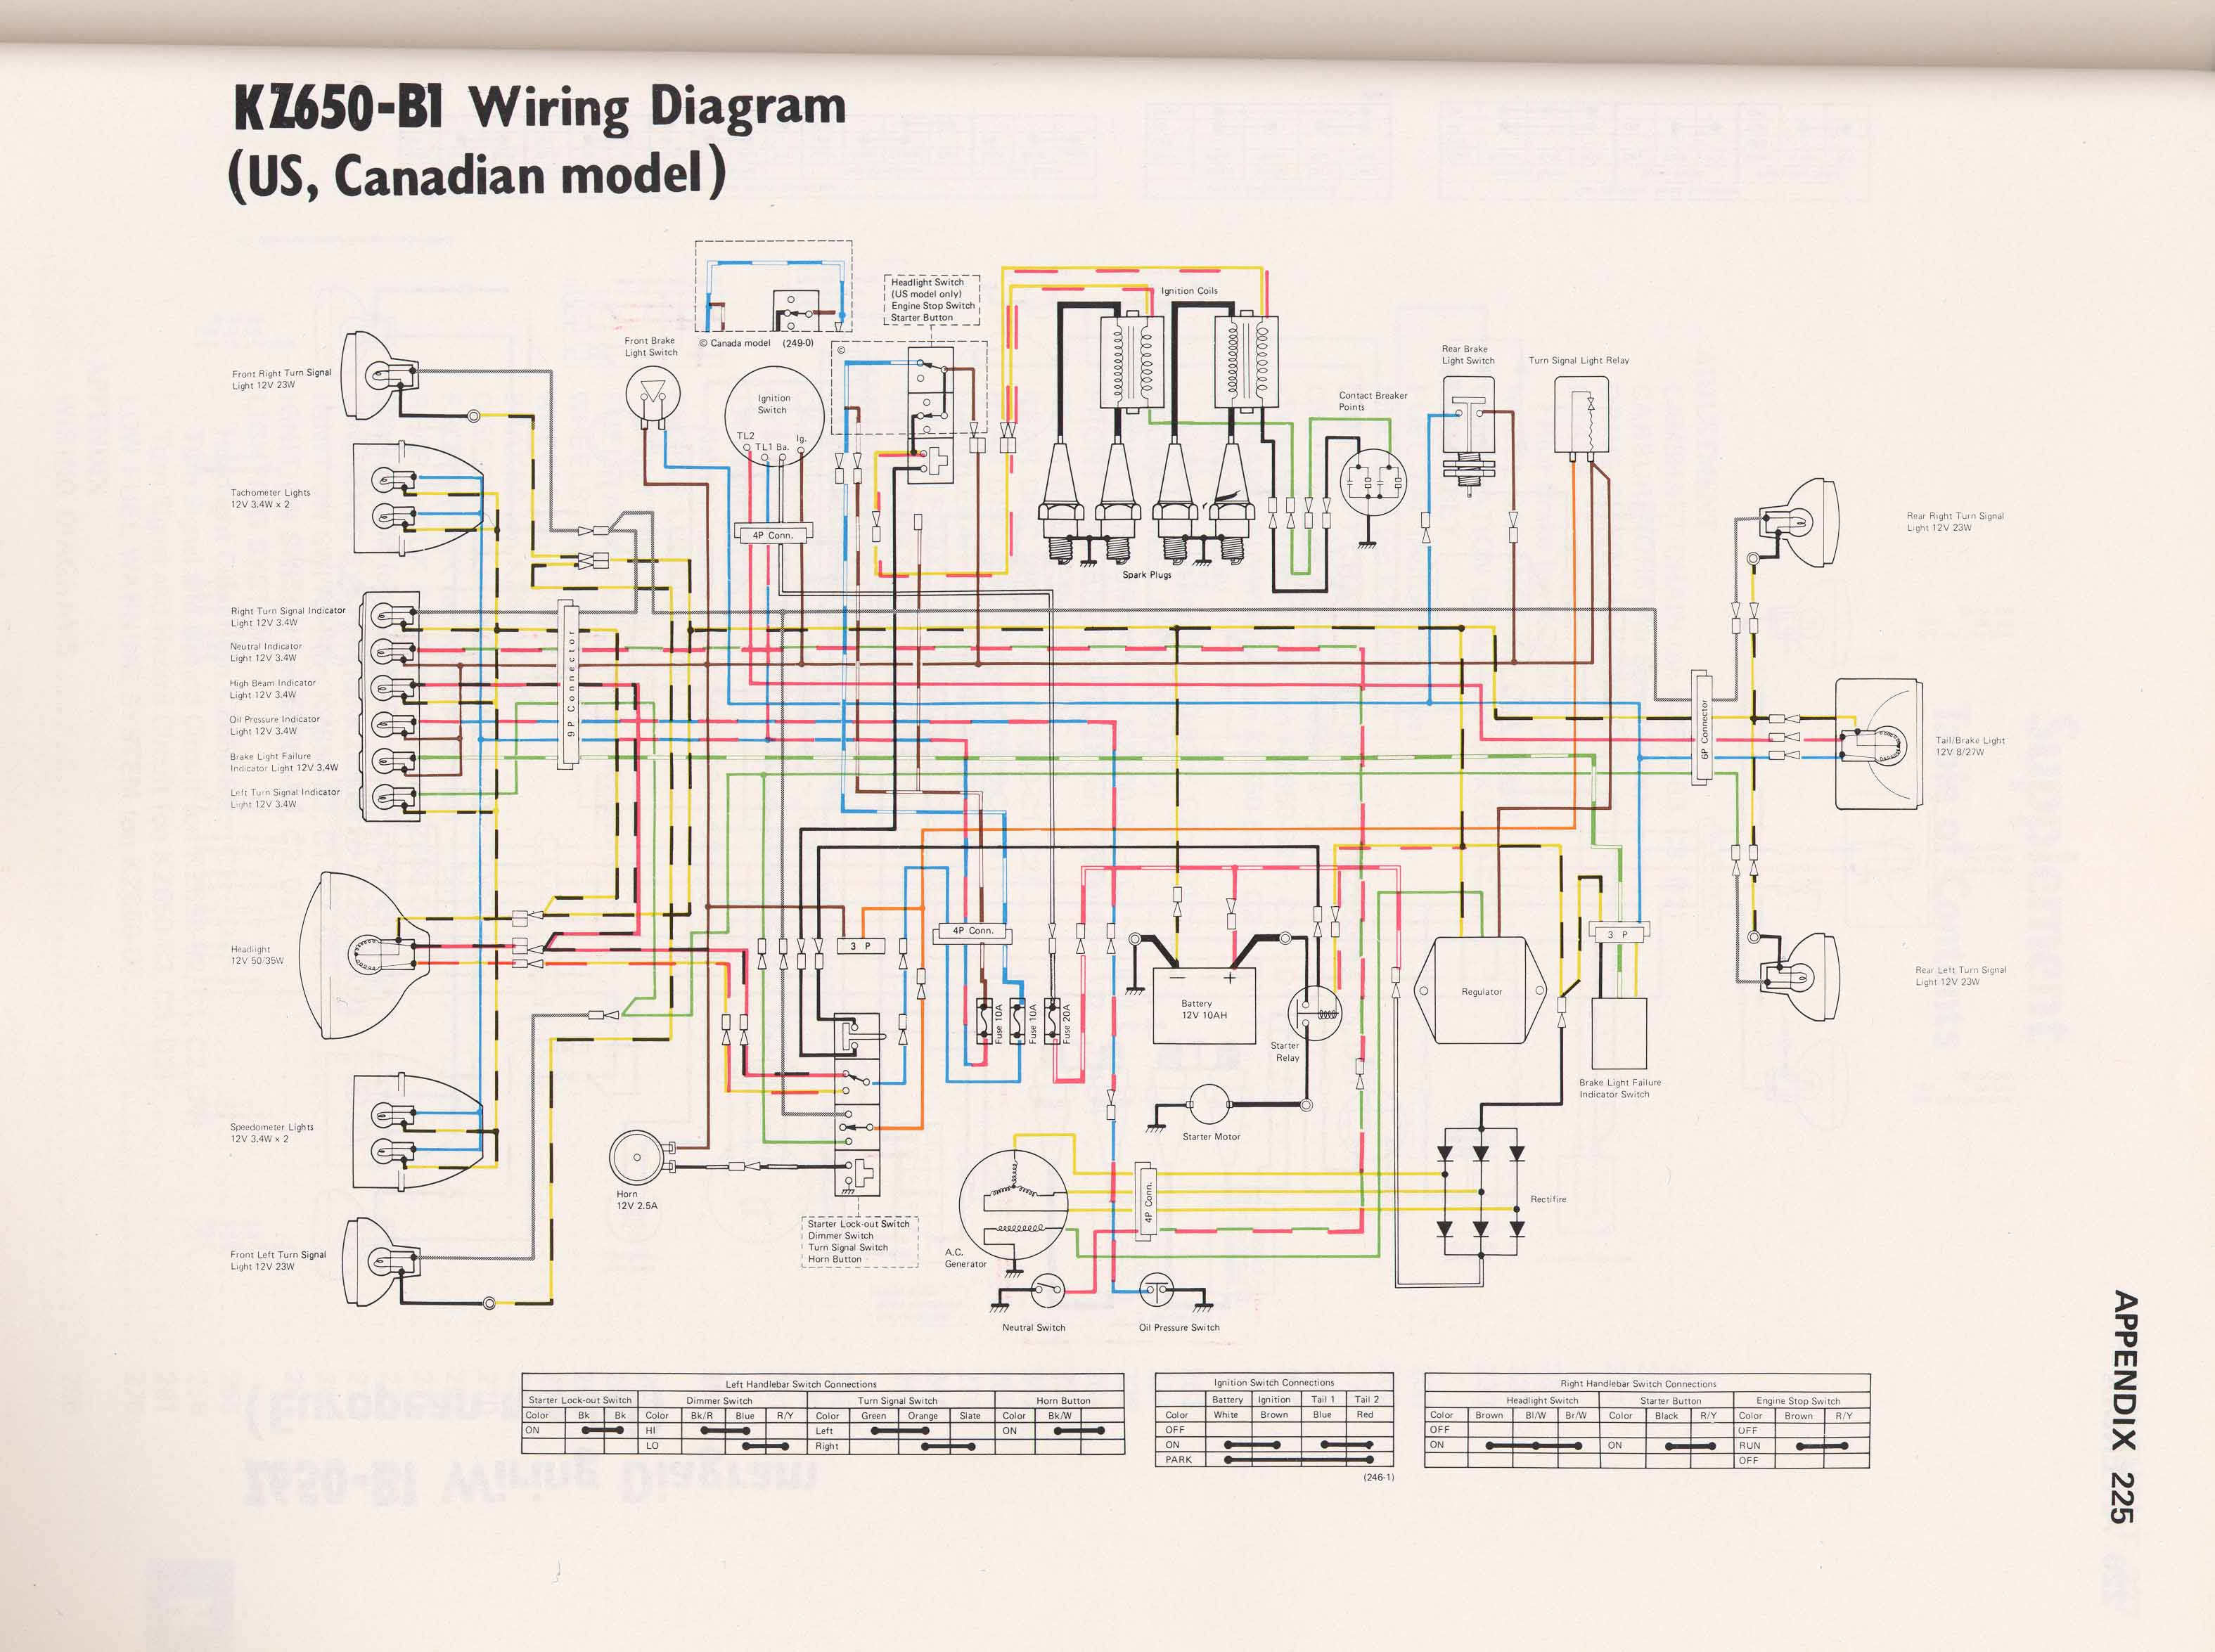 KZ650 B1 kz650 info wiring diagrams modem wiring diagram at mifinder.co